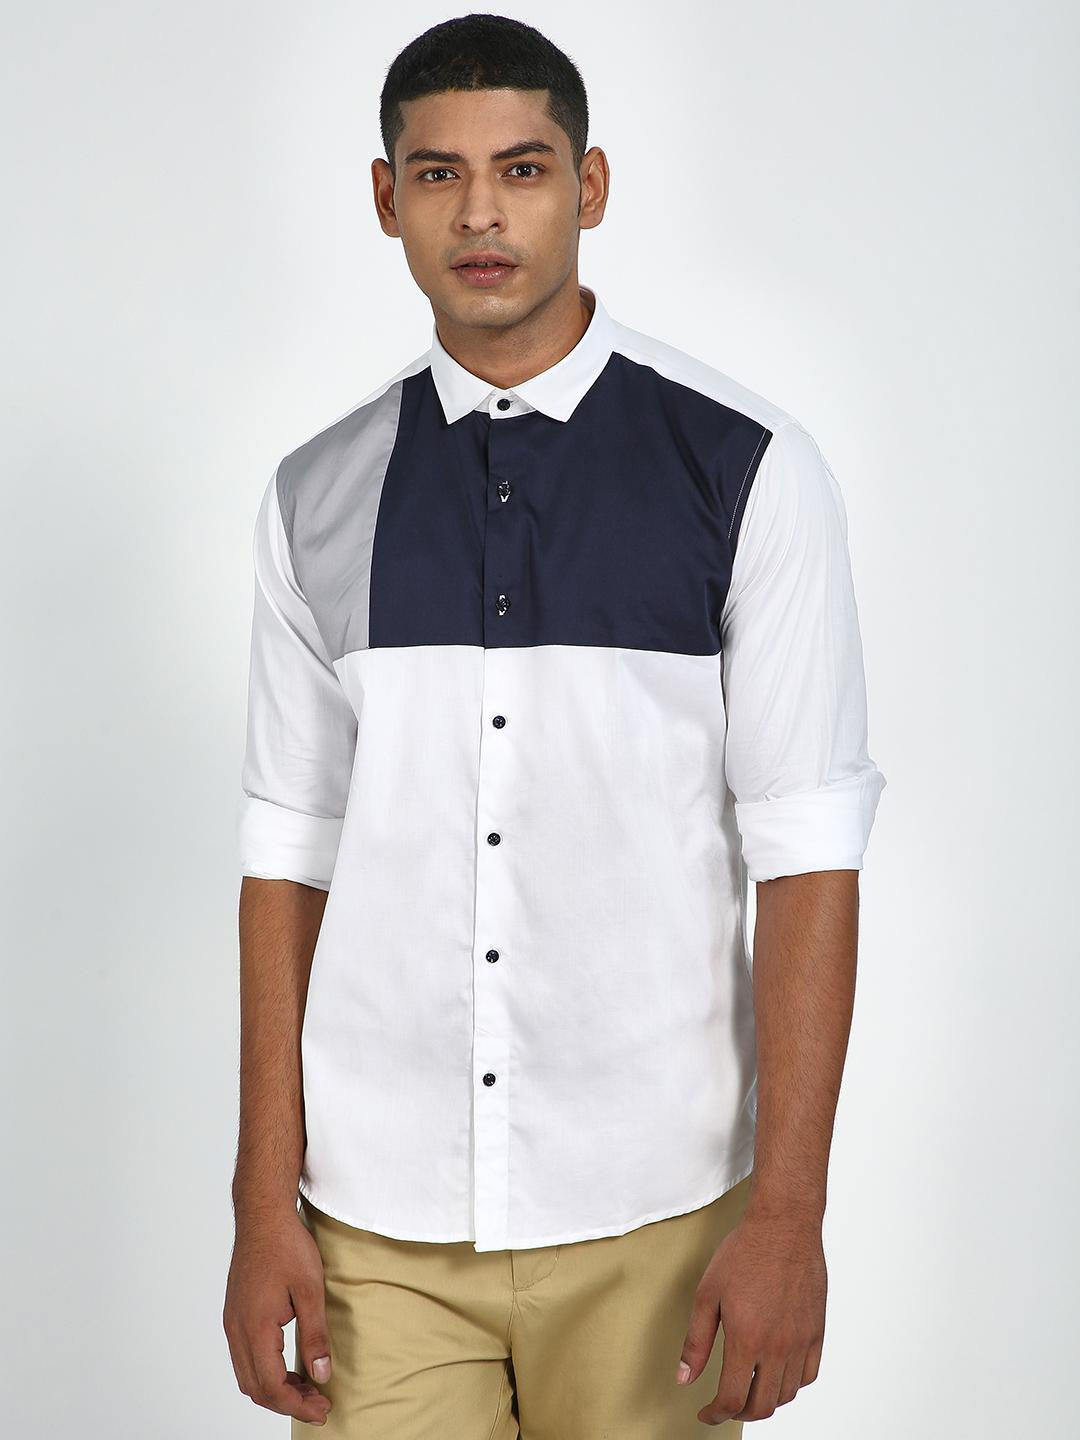 Green Hill White Men's Color Block Casual Shirt 1